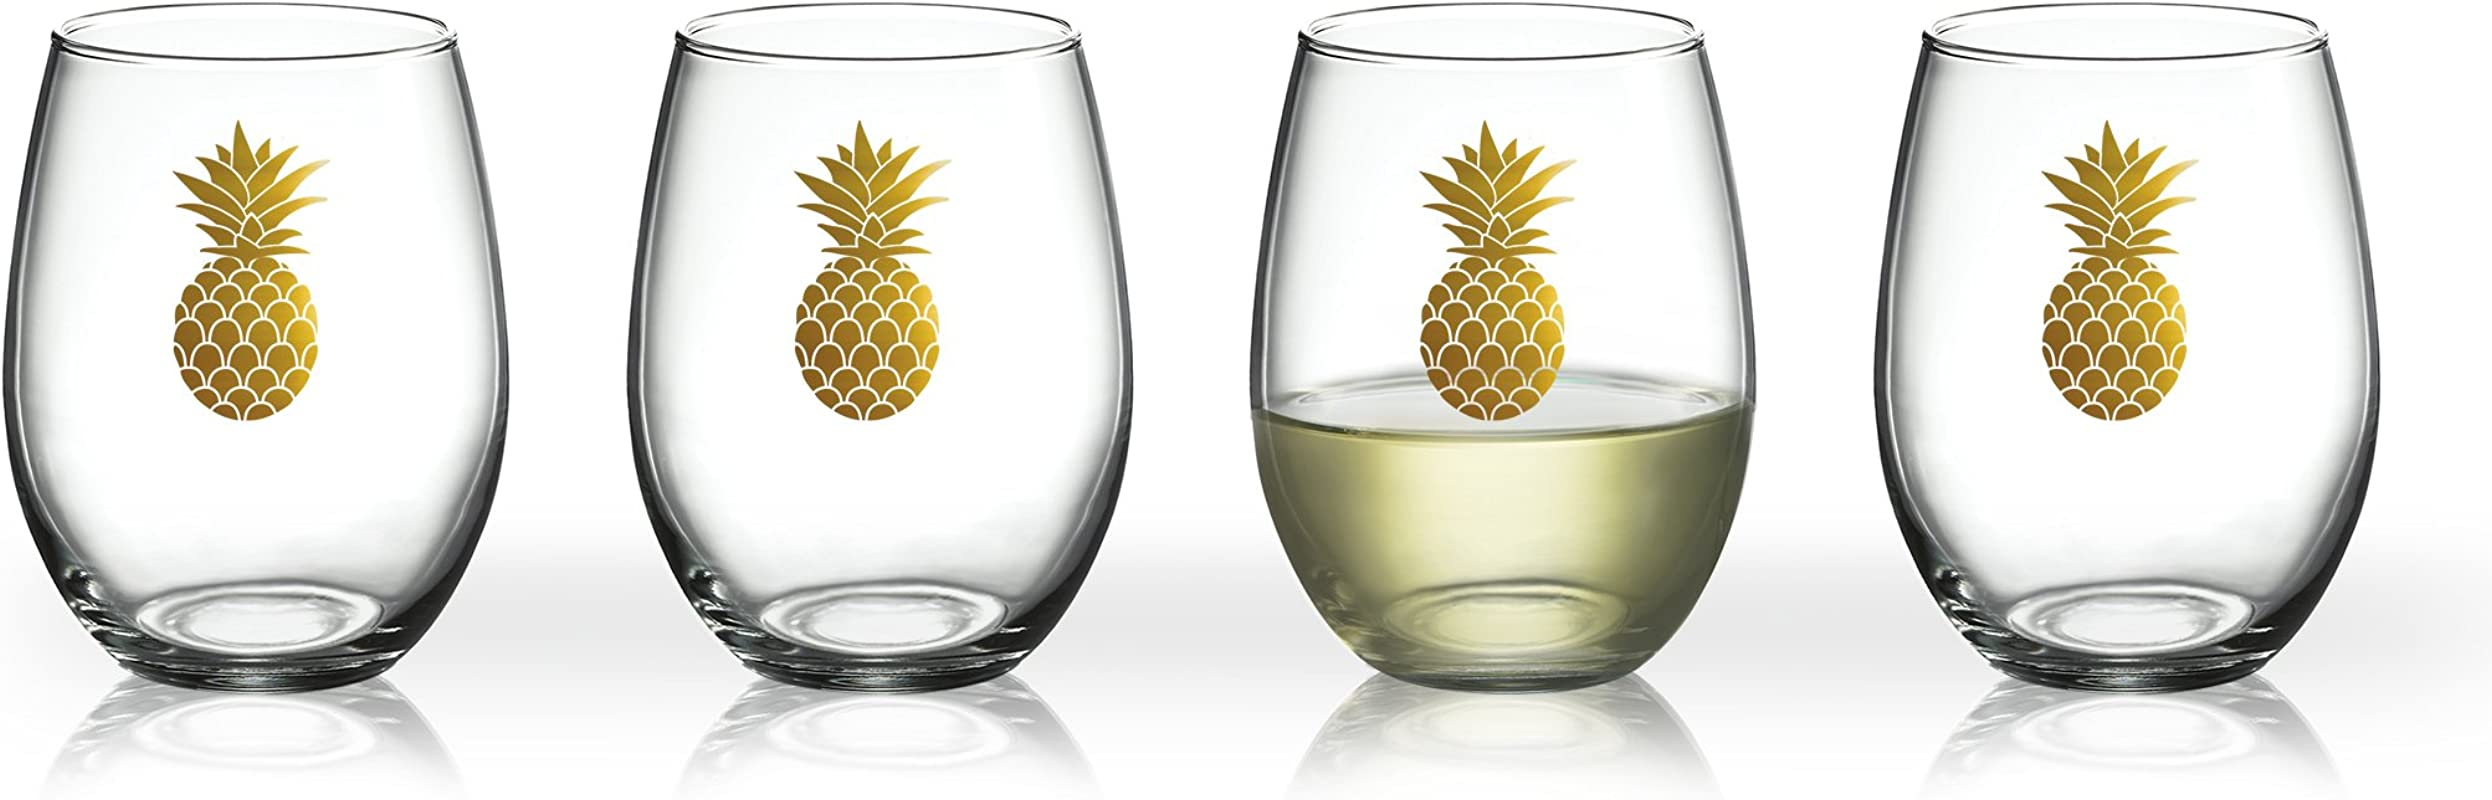 Luminarc Arc International Aloha Gold Pineapple Bulk Perfection Glass Set Of 6 17 Oz Clear